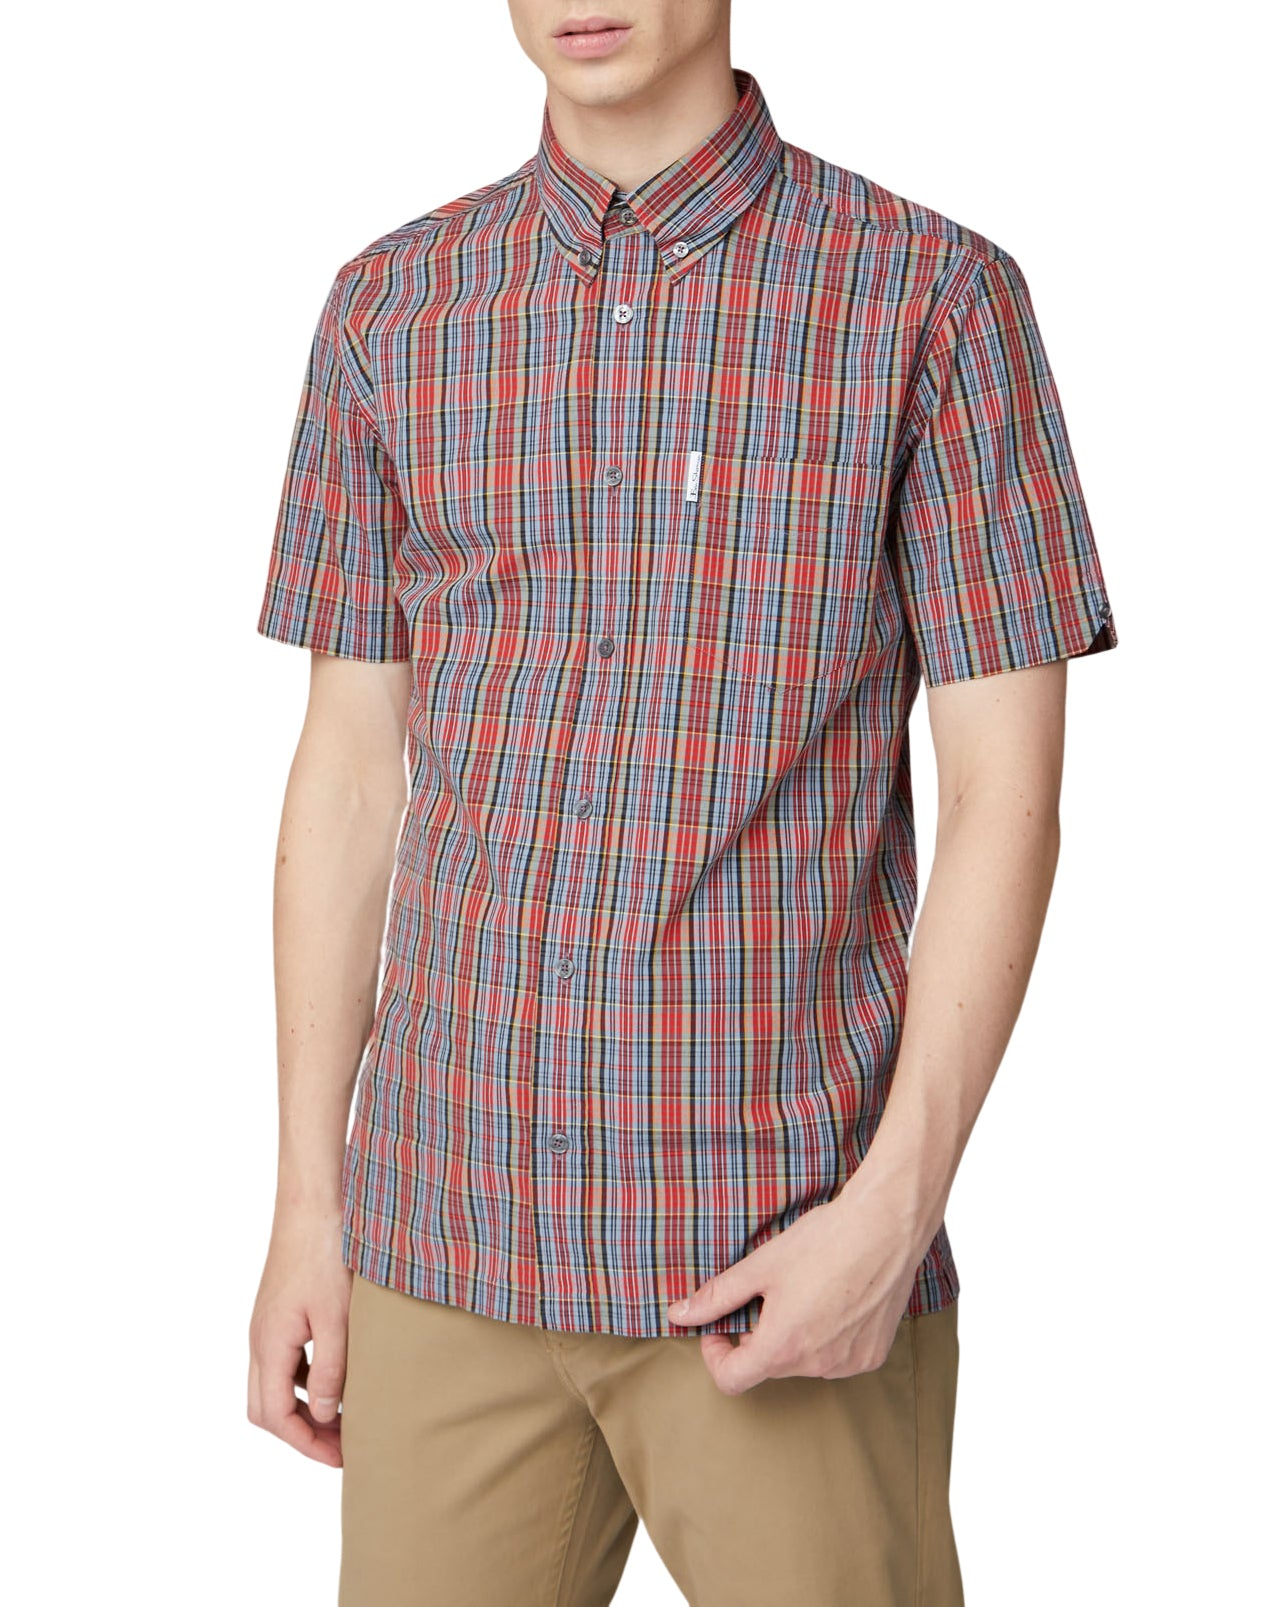 Short-Sleeve Archive Check Shirt - Red